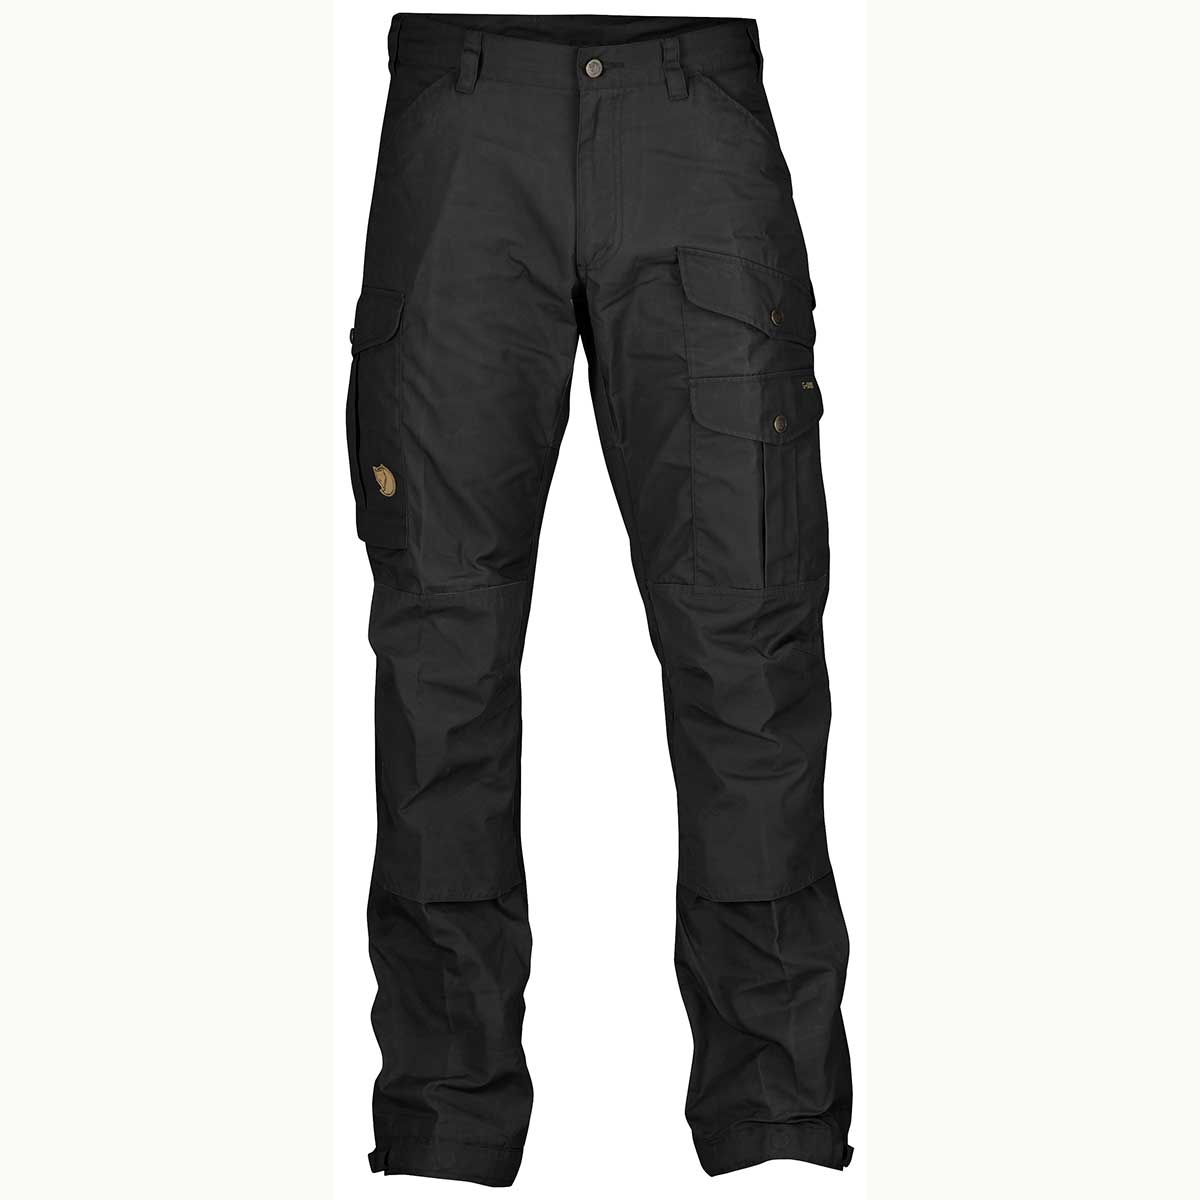 Fjallraven men's Vidda Pro Trousers in Black and Black front view